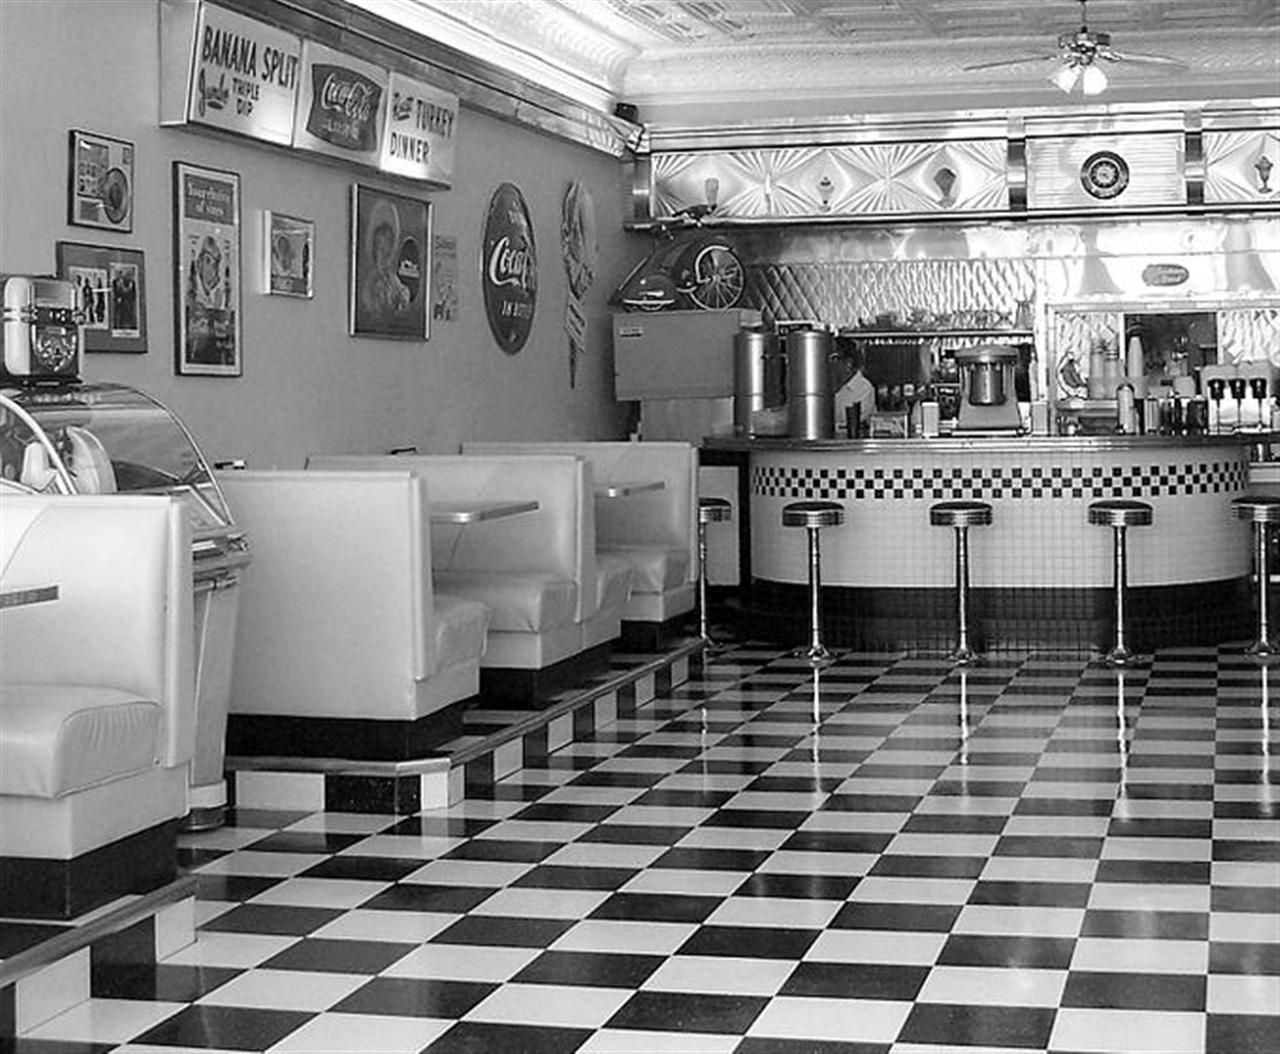 1950 39 s diner interior 1950s pinterest 1950s diner diners and 1950s. Black Bedroom Furniture Sets. Home Design Ideas